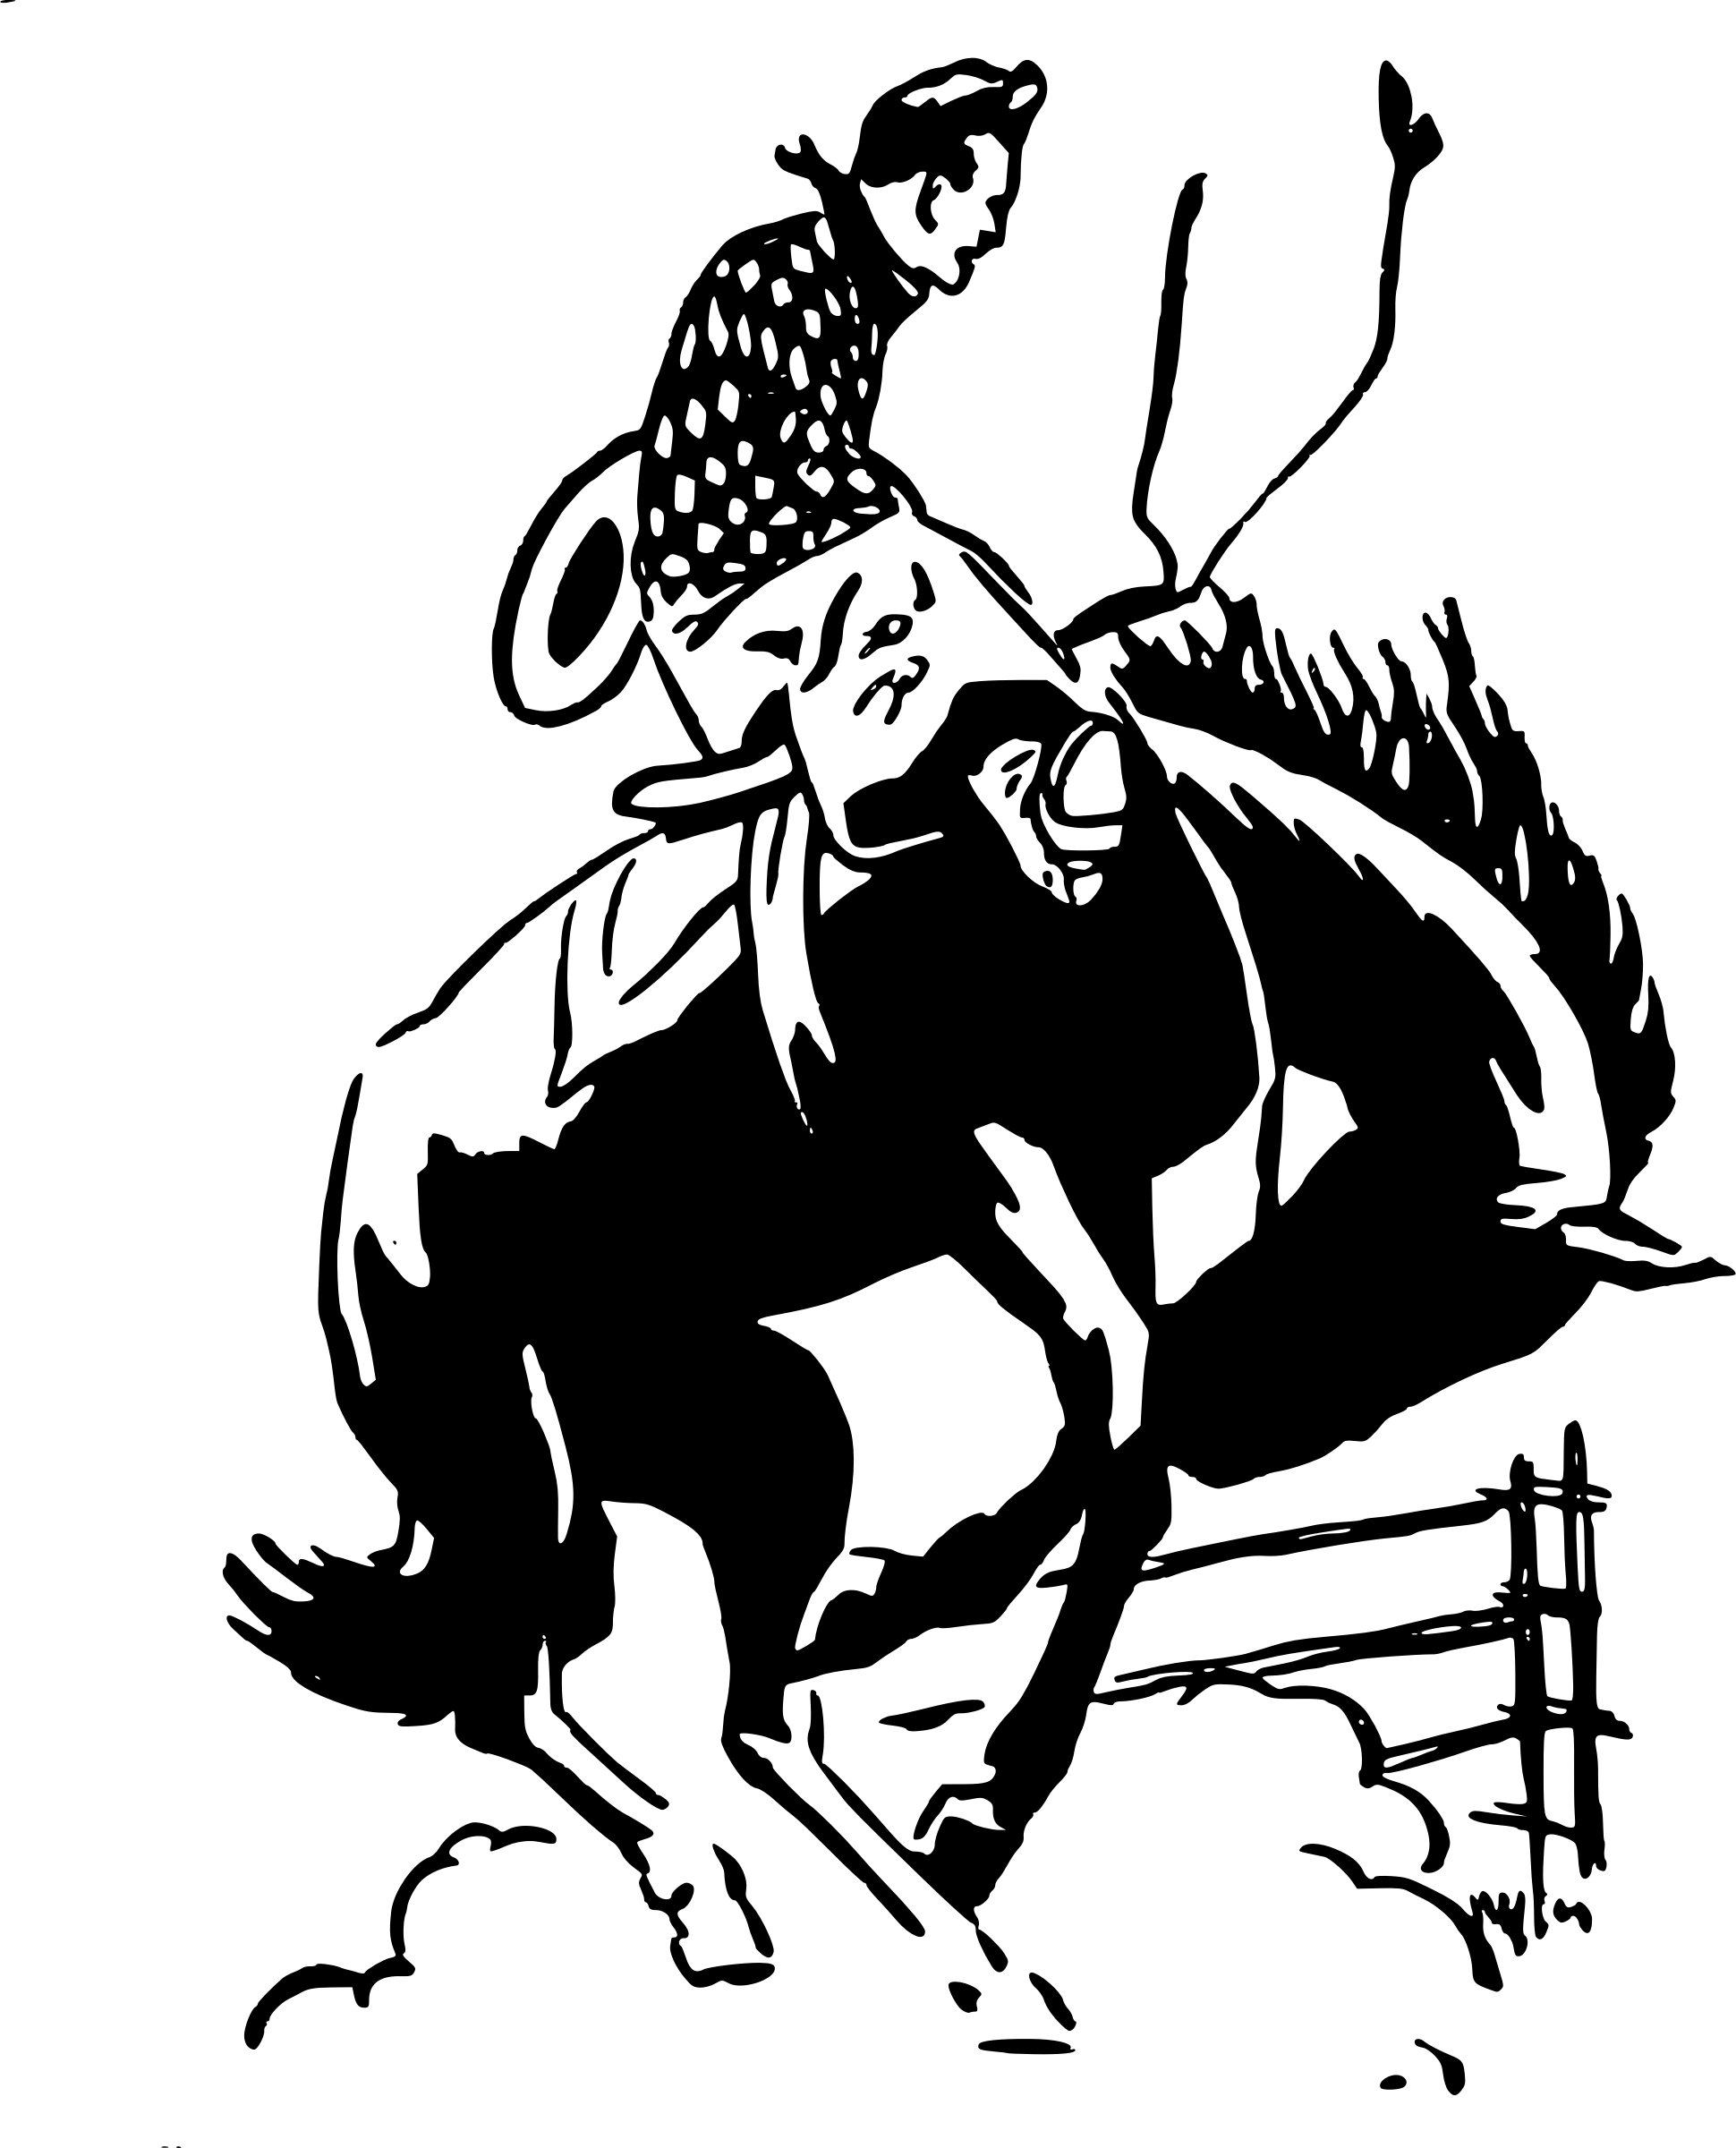 vector freeuse library Western horse riding clipart. Cowboy rodeo transparent png